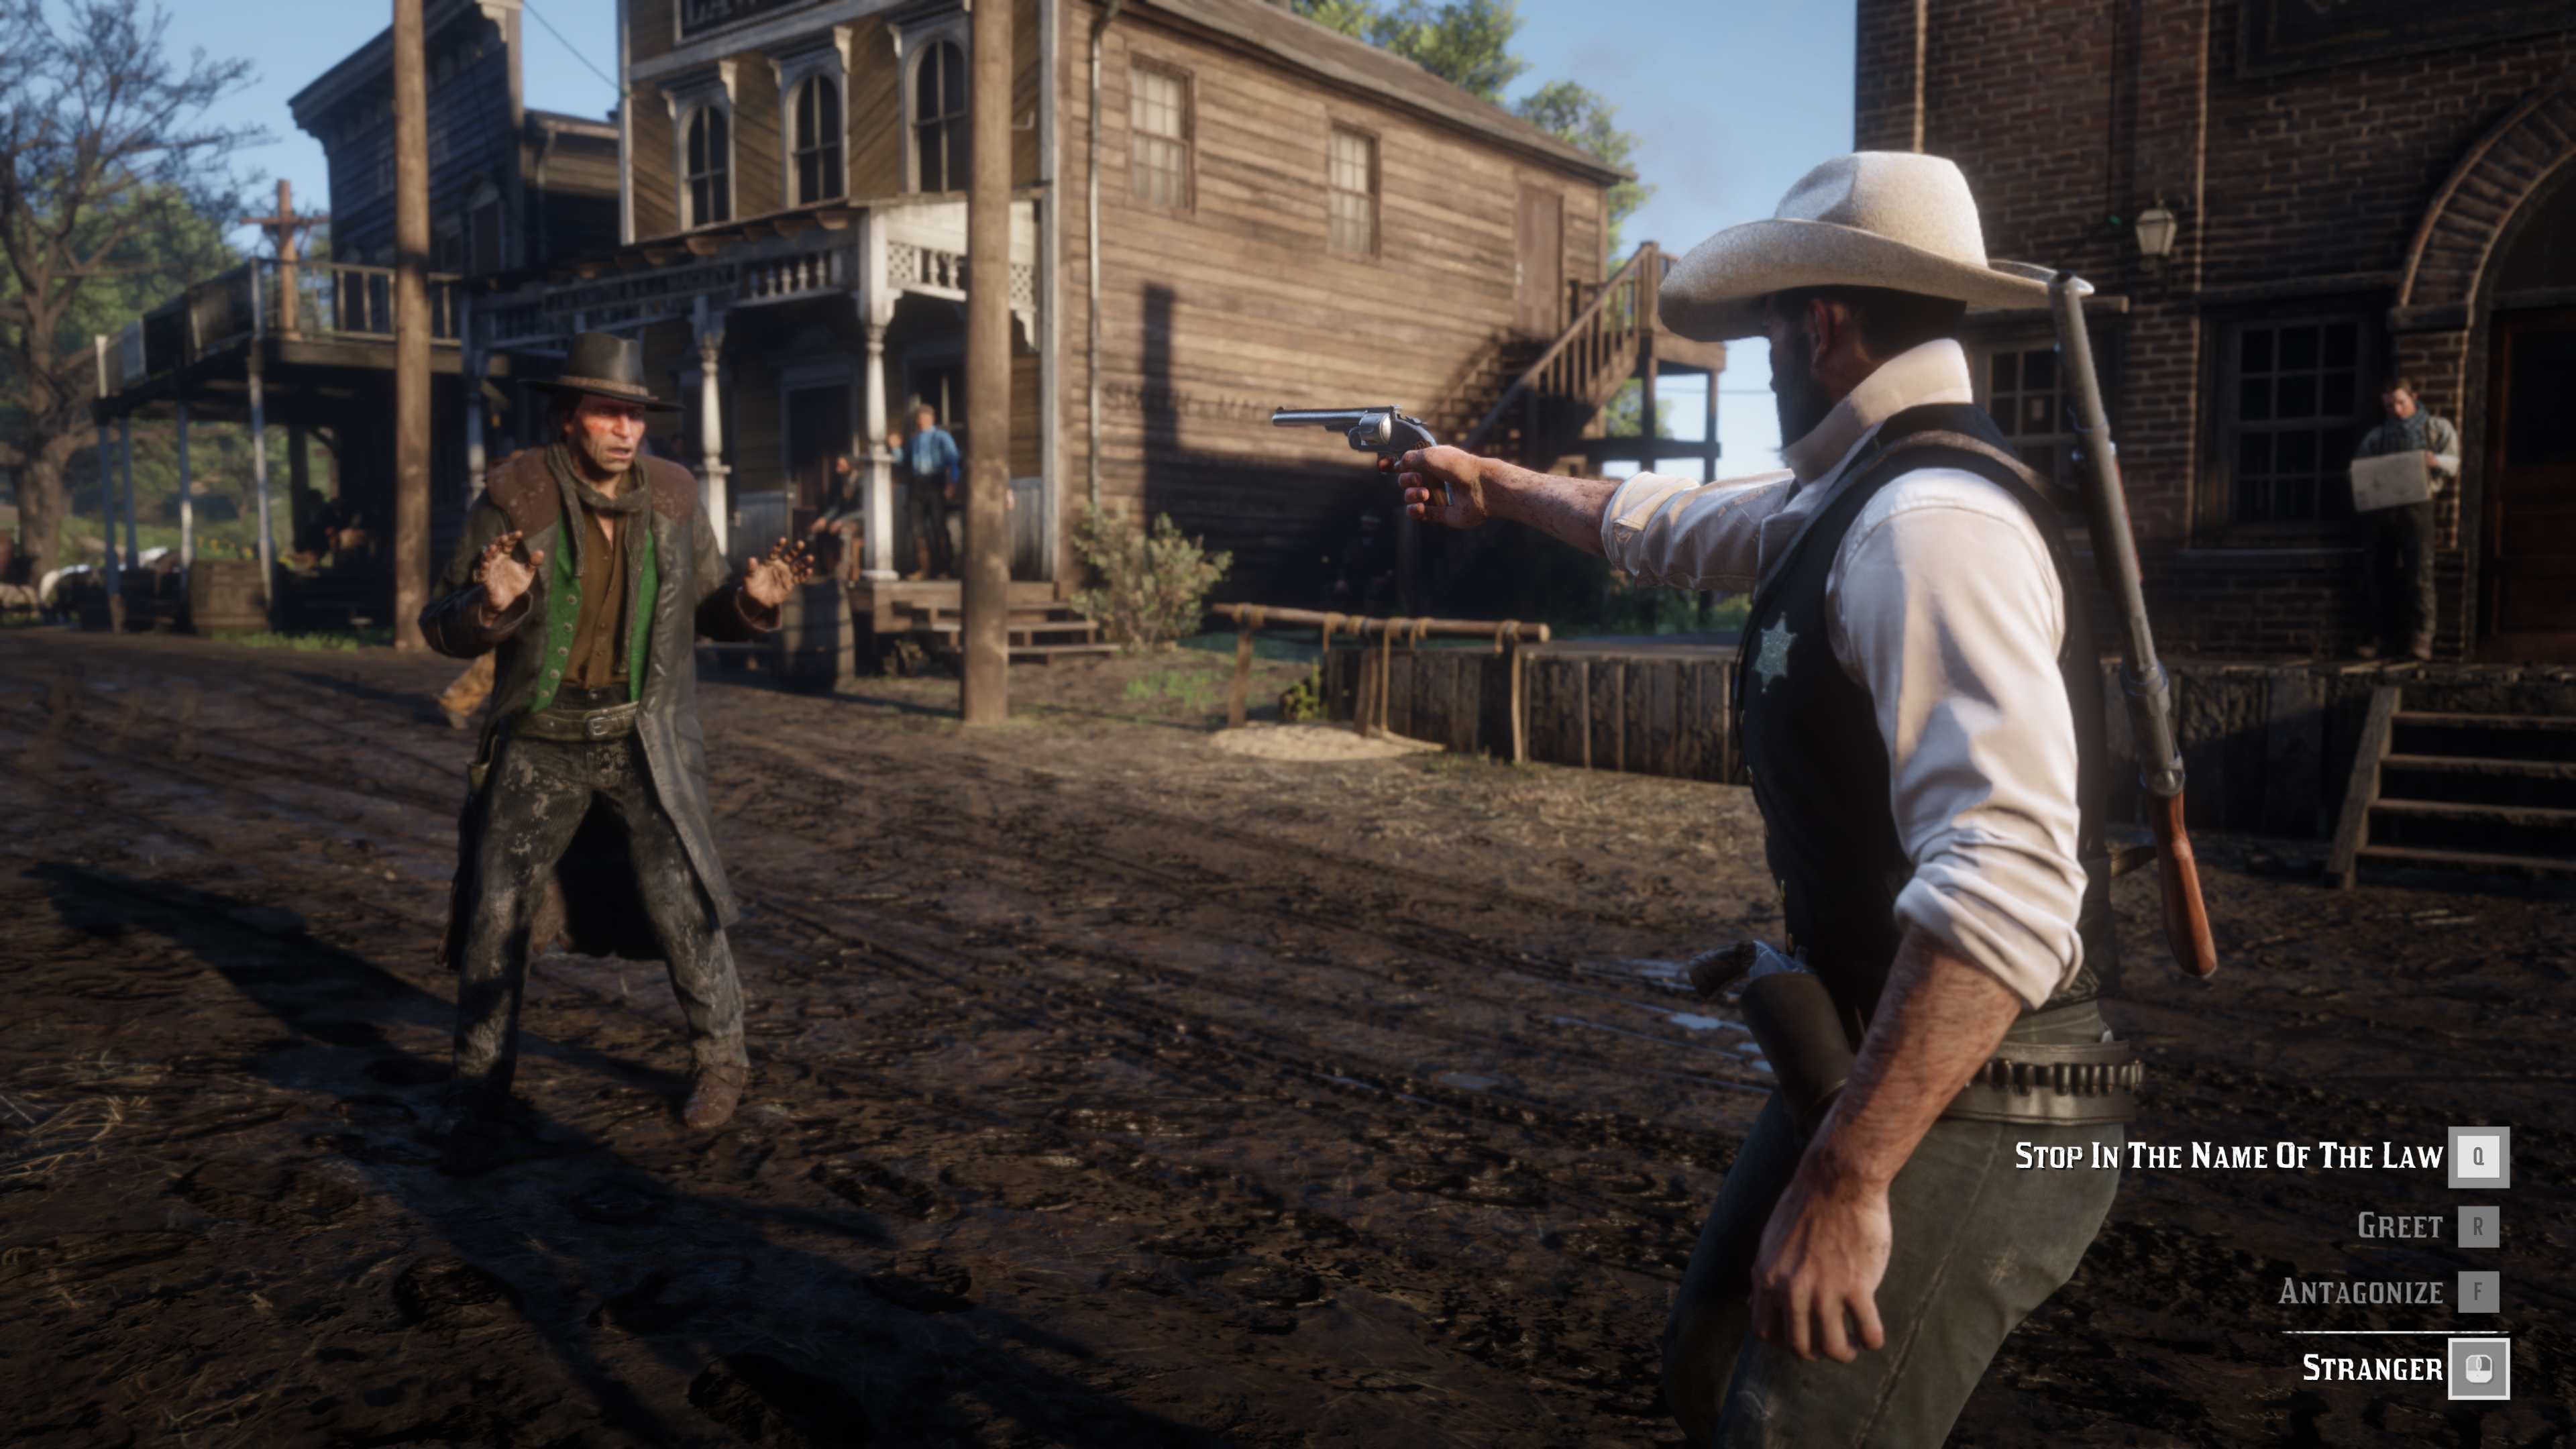 Rockstar Work Environment Changes After A Year And Half Since Red Dead Redemption 2's First Release